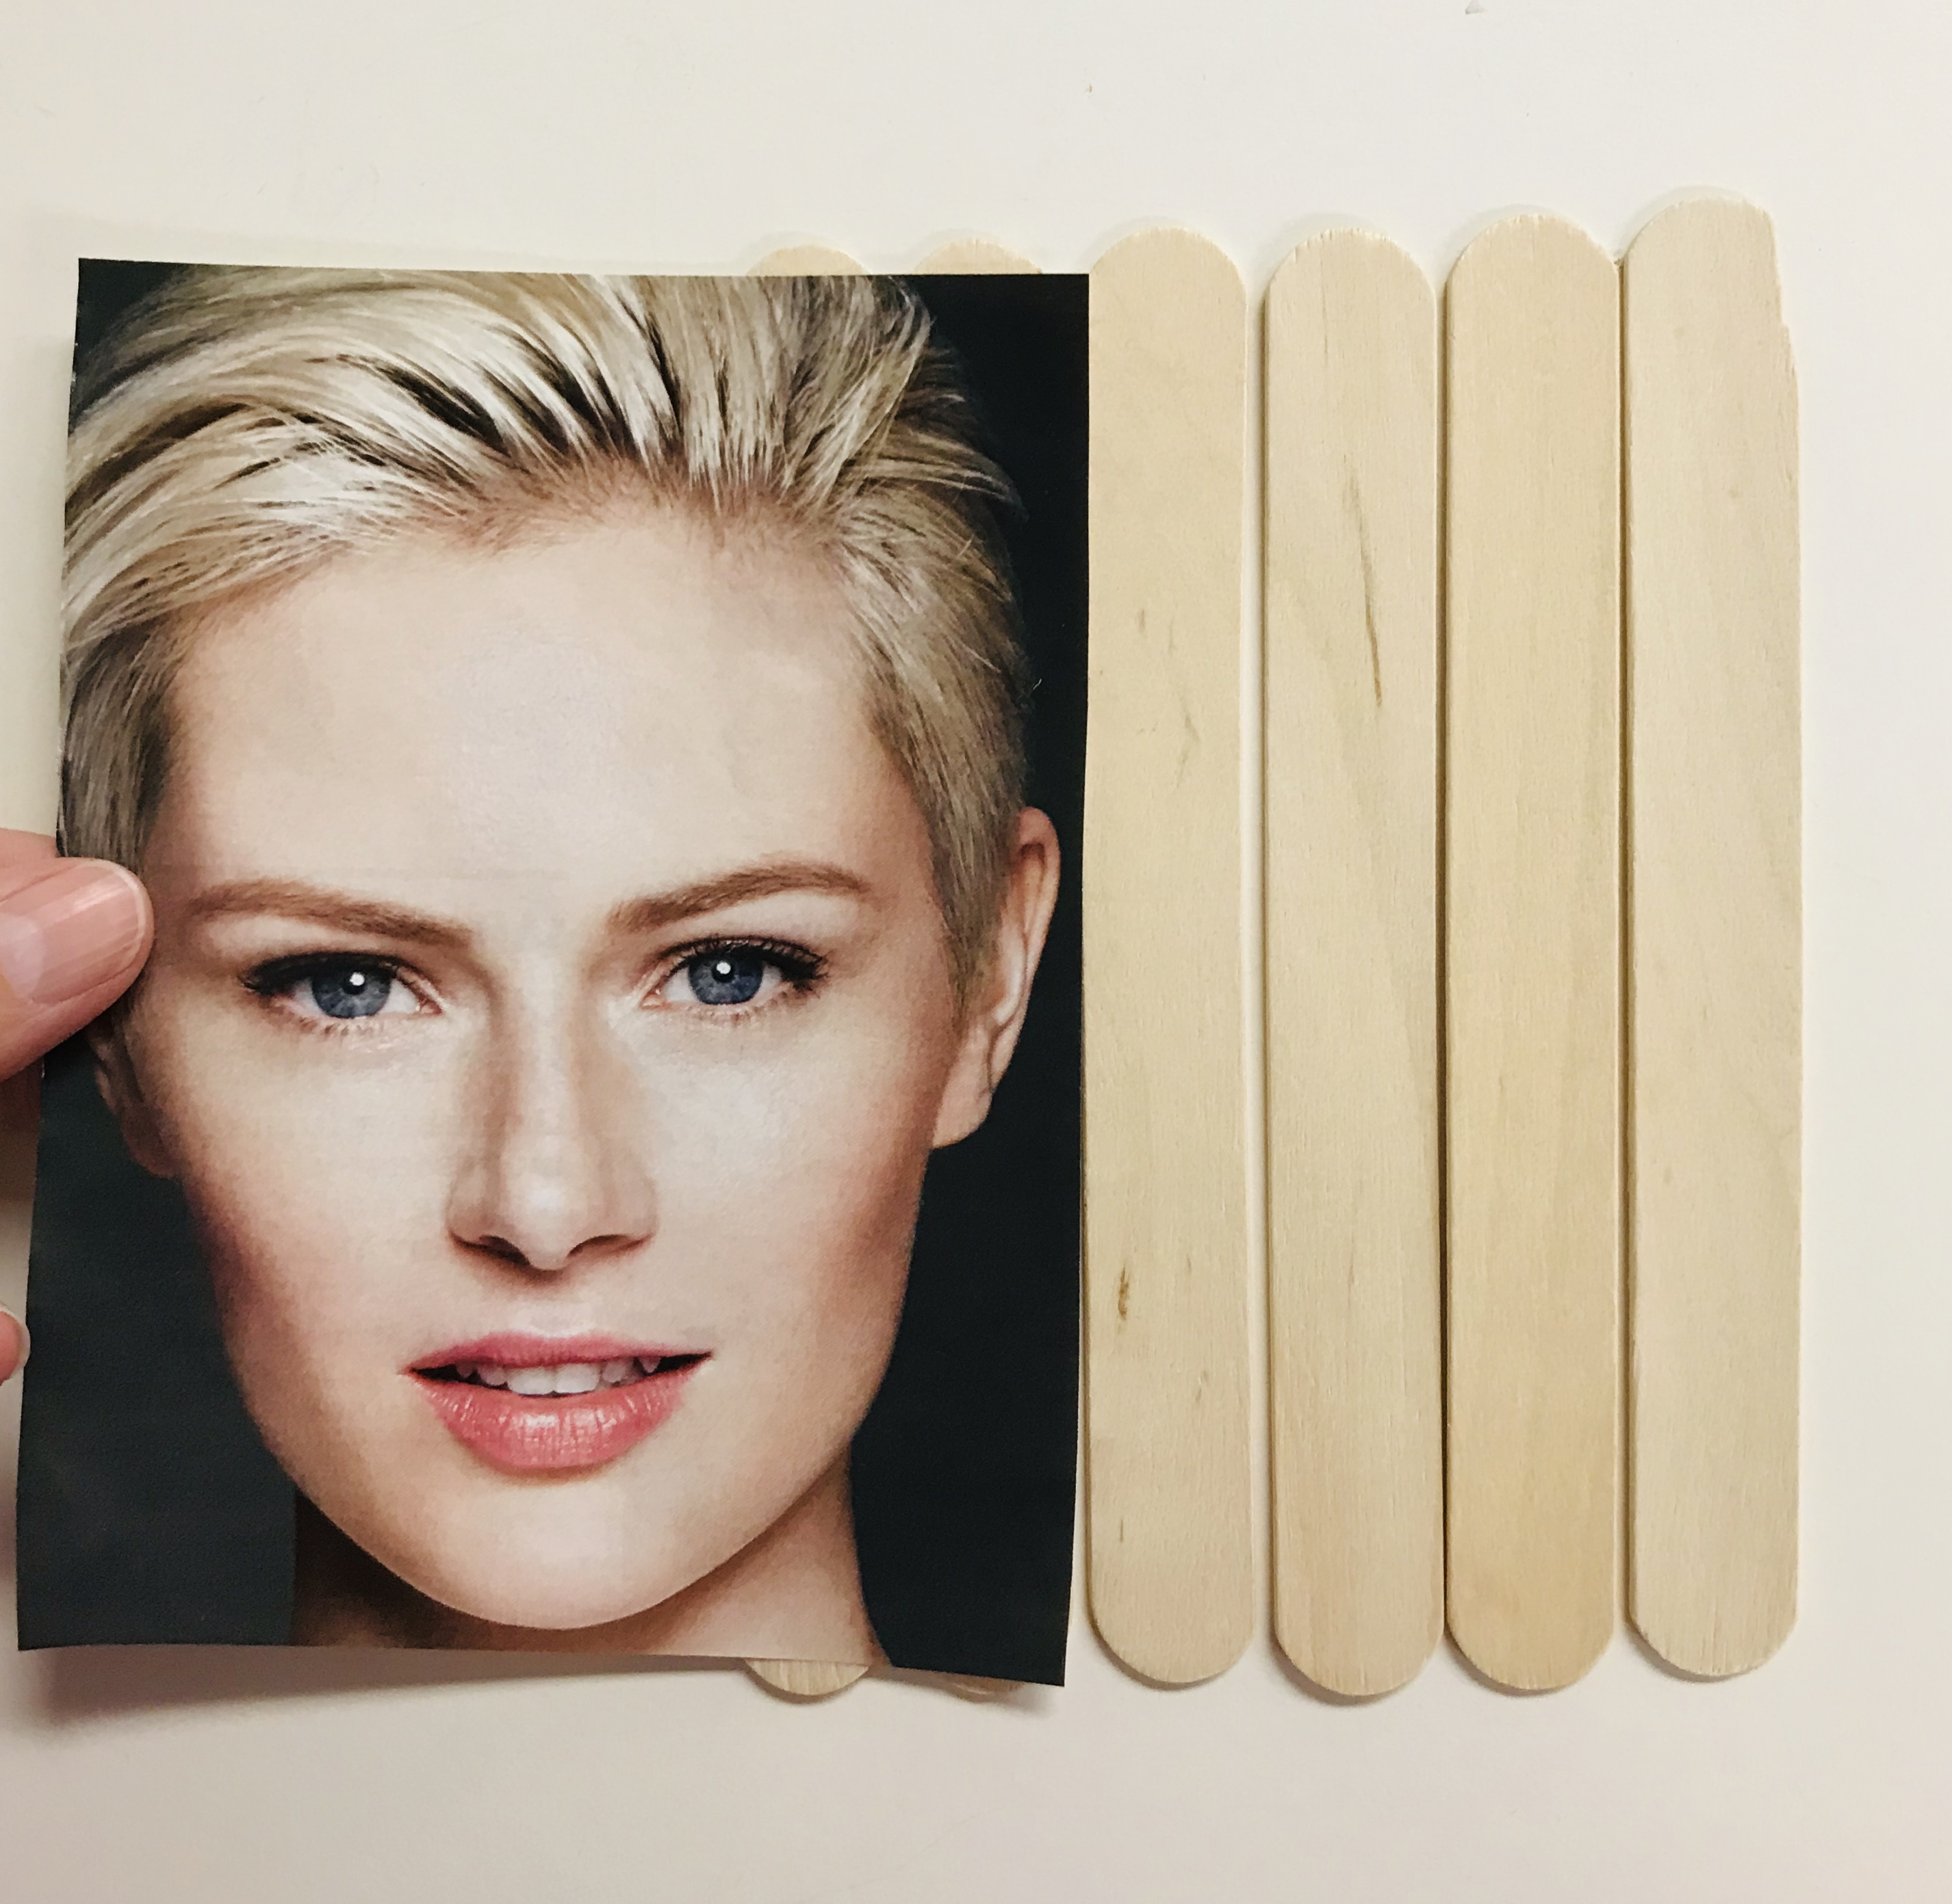 Blonde woman image and popsicle sticks